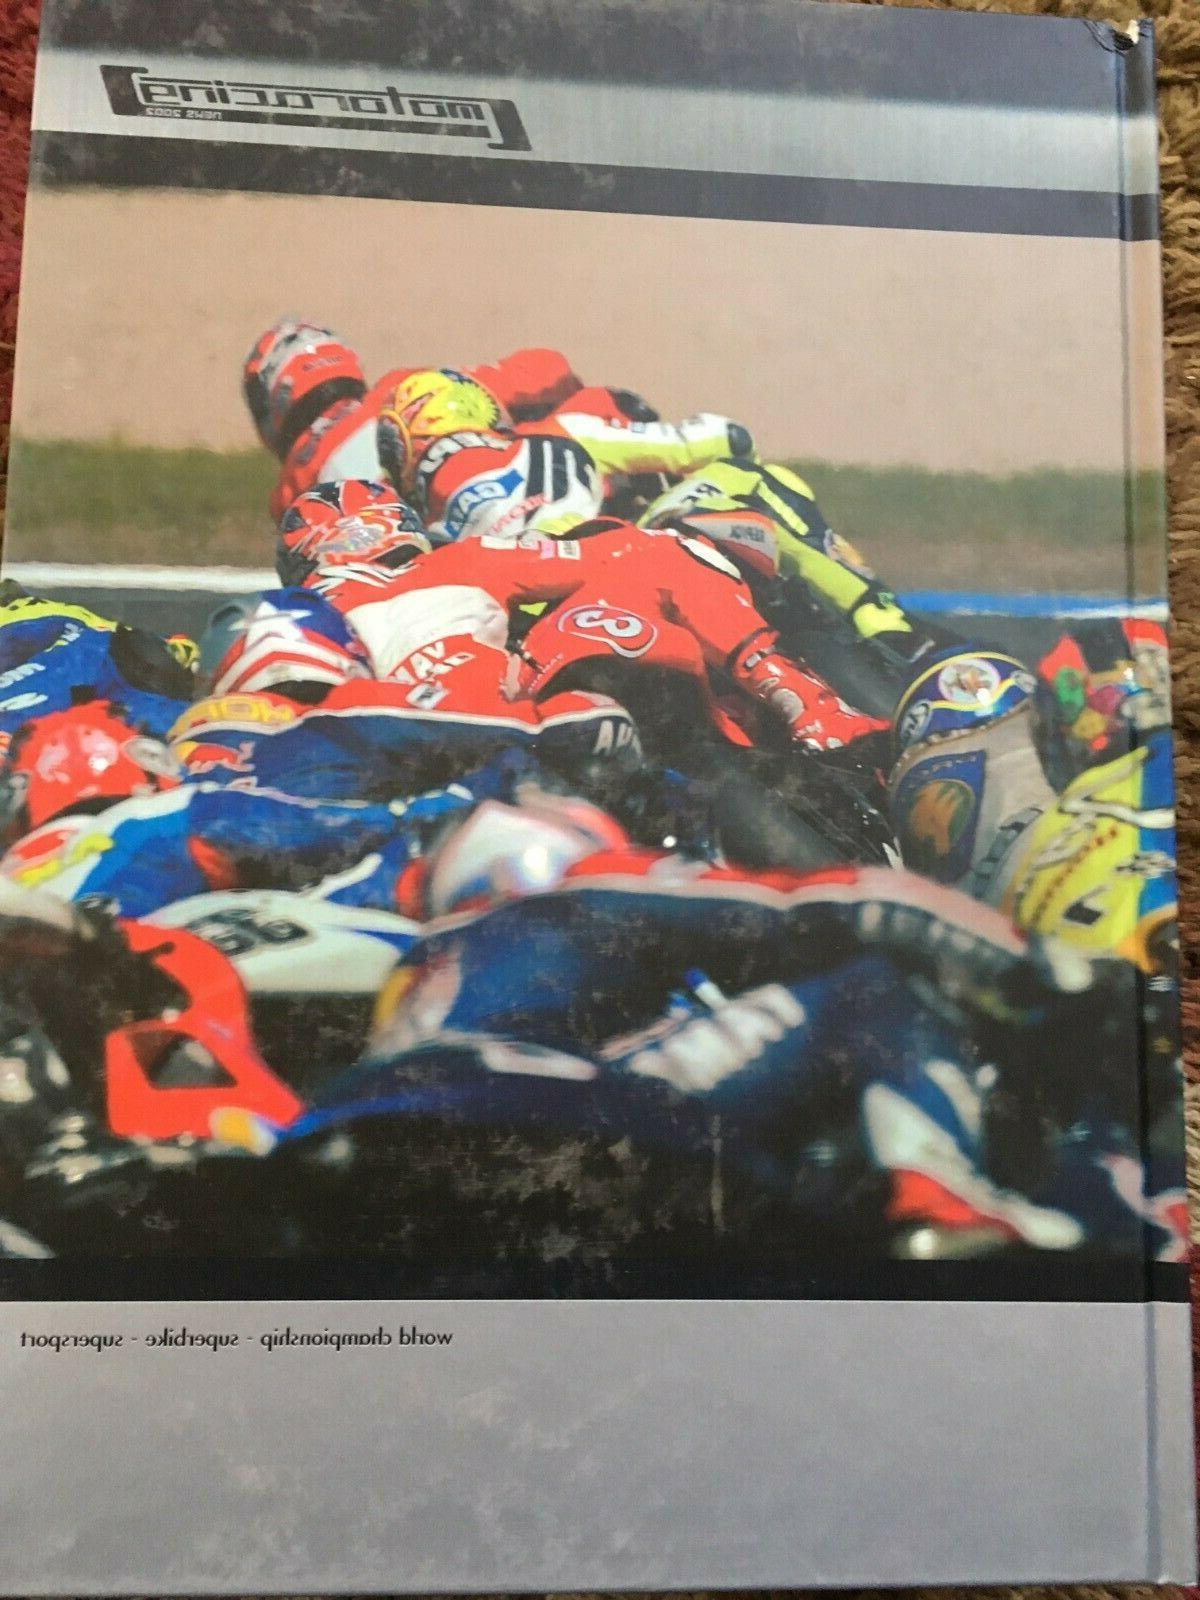 motoracing news 2002 coffee table size book